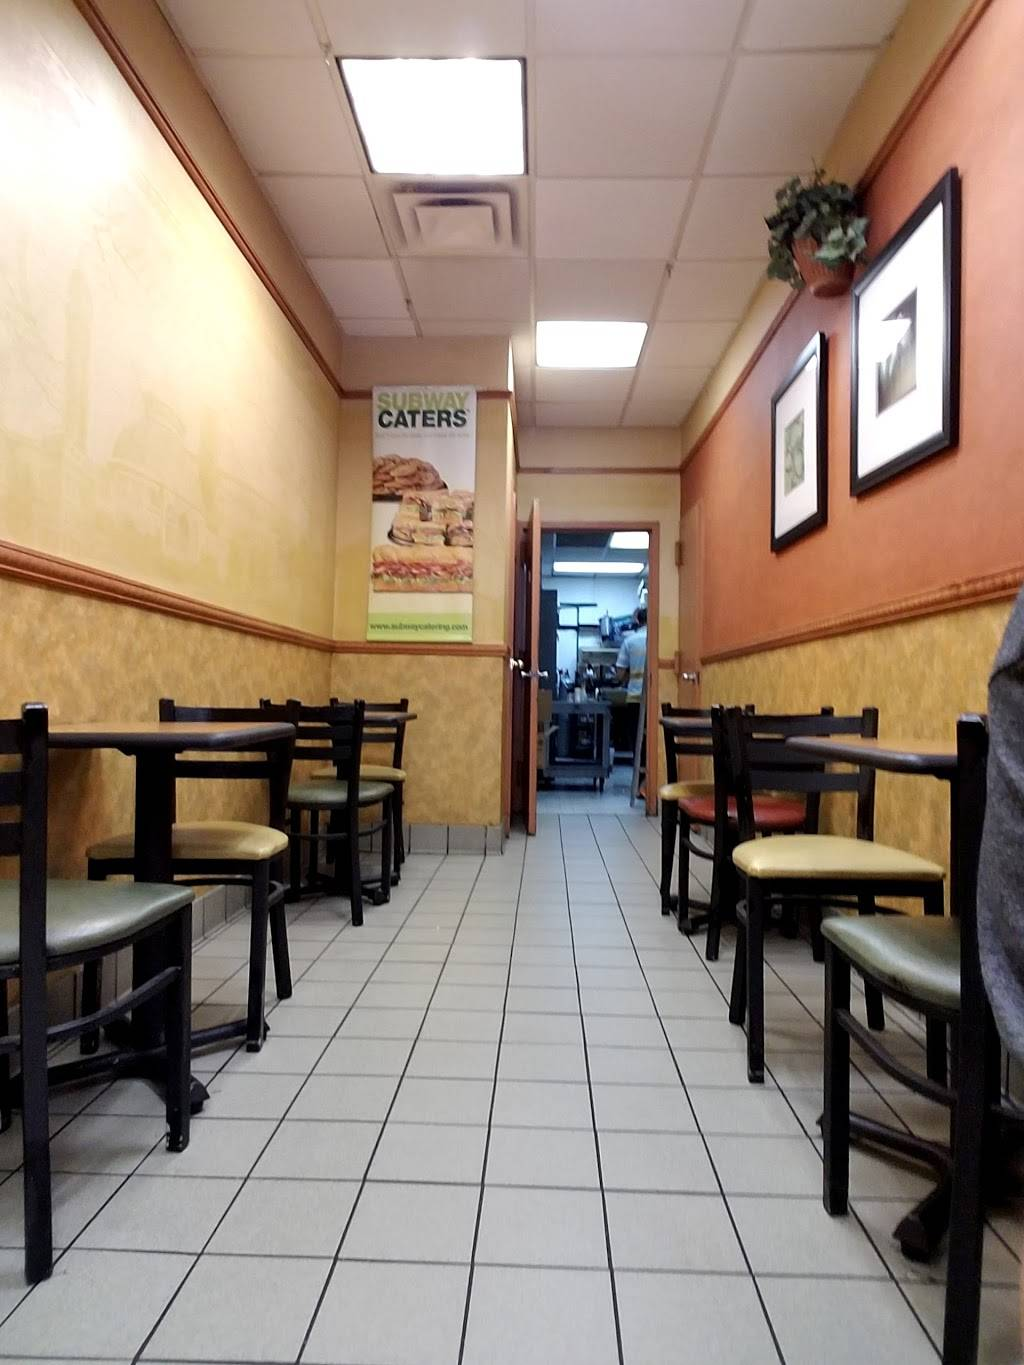 Subway Restaurants | restaurant | 1885 3rd Ave, New York, NY 10029, USA | 2125344676 OR +1 212-534-4676